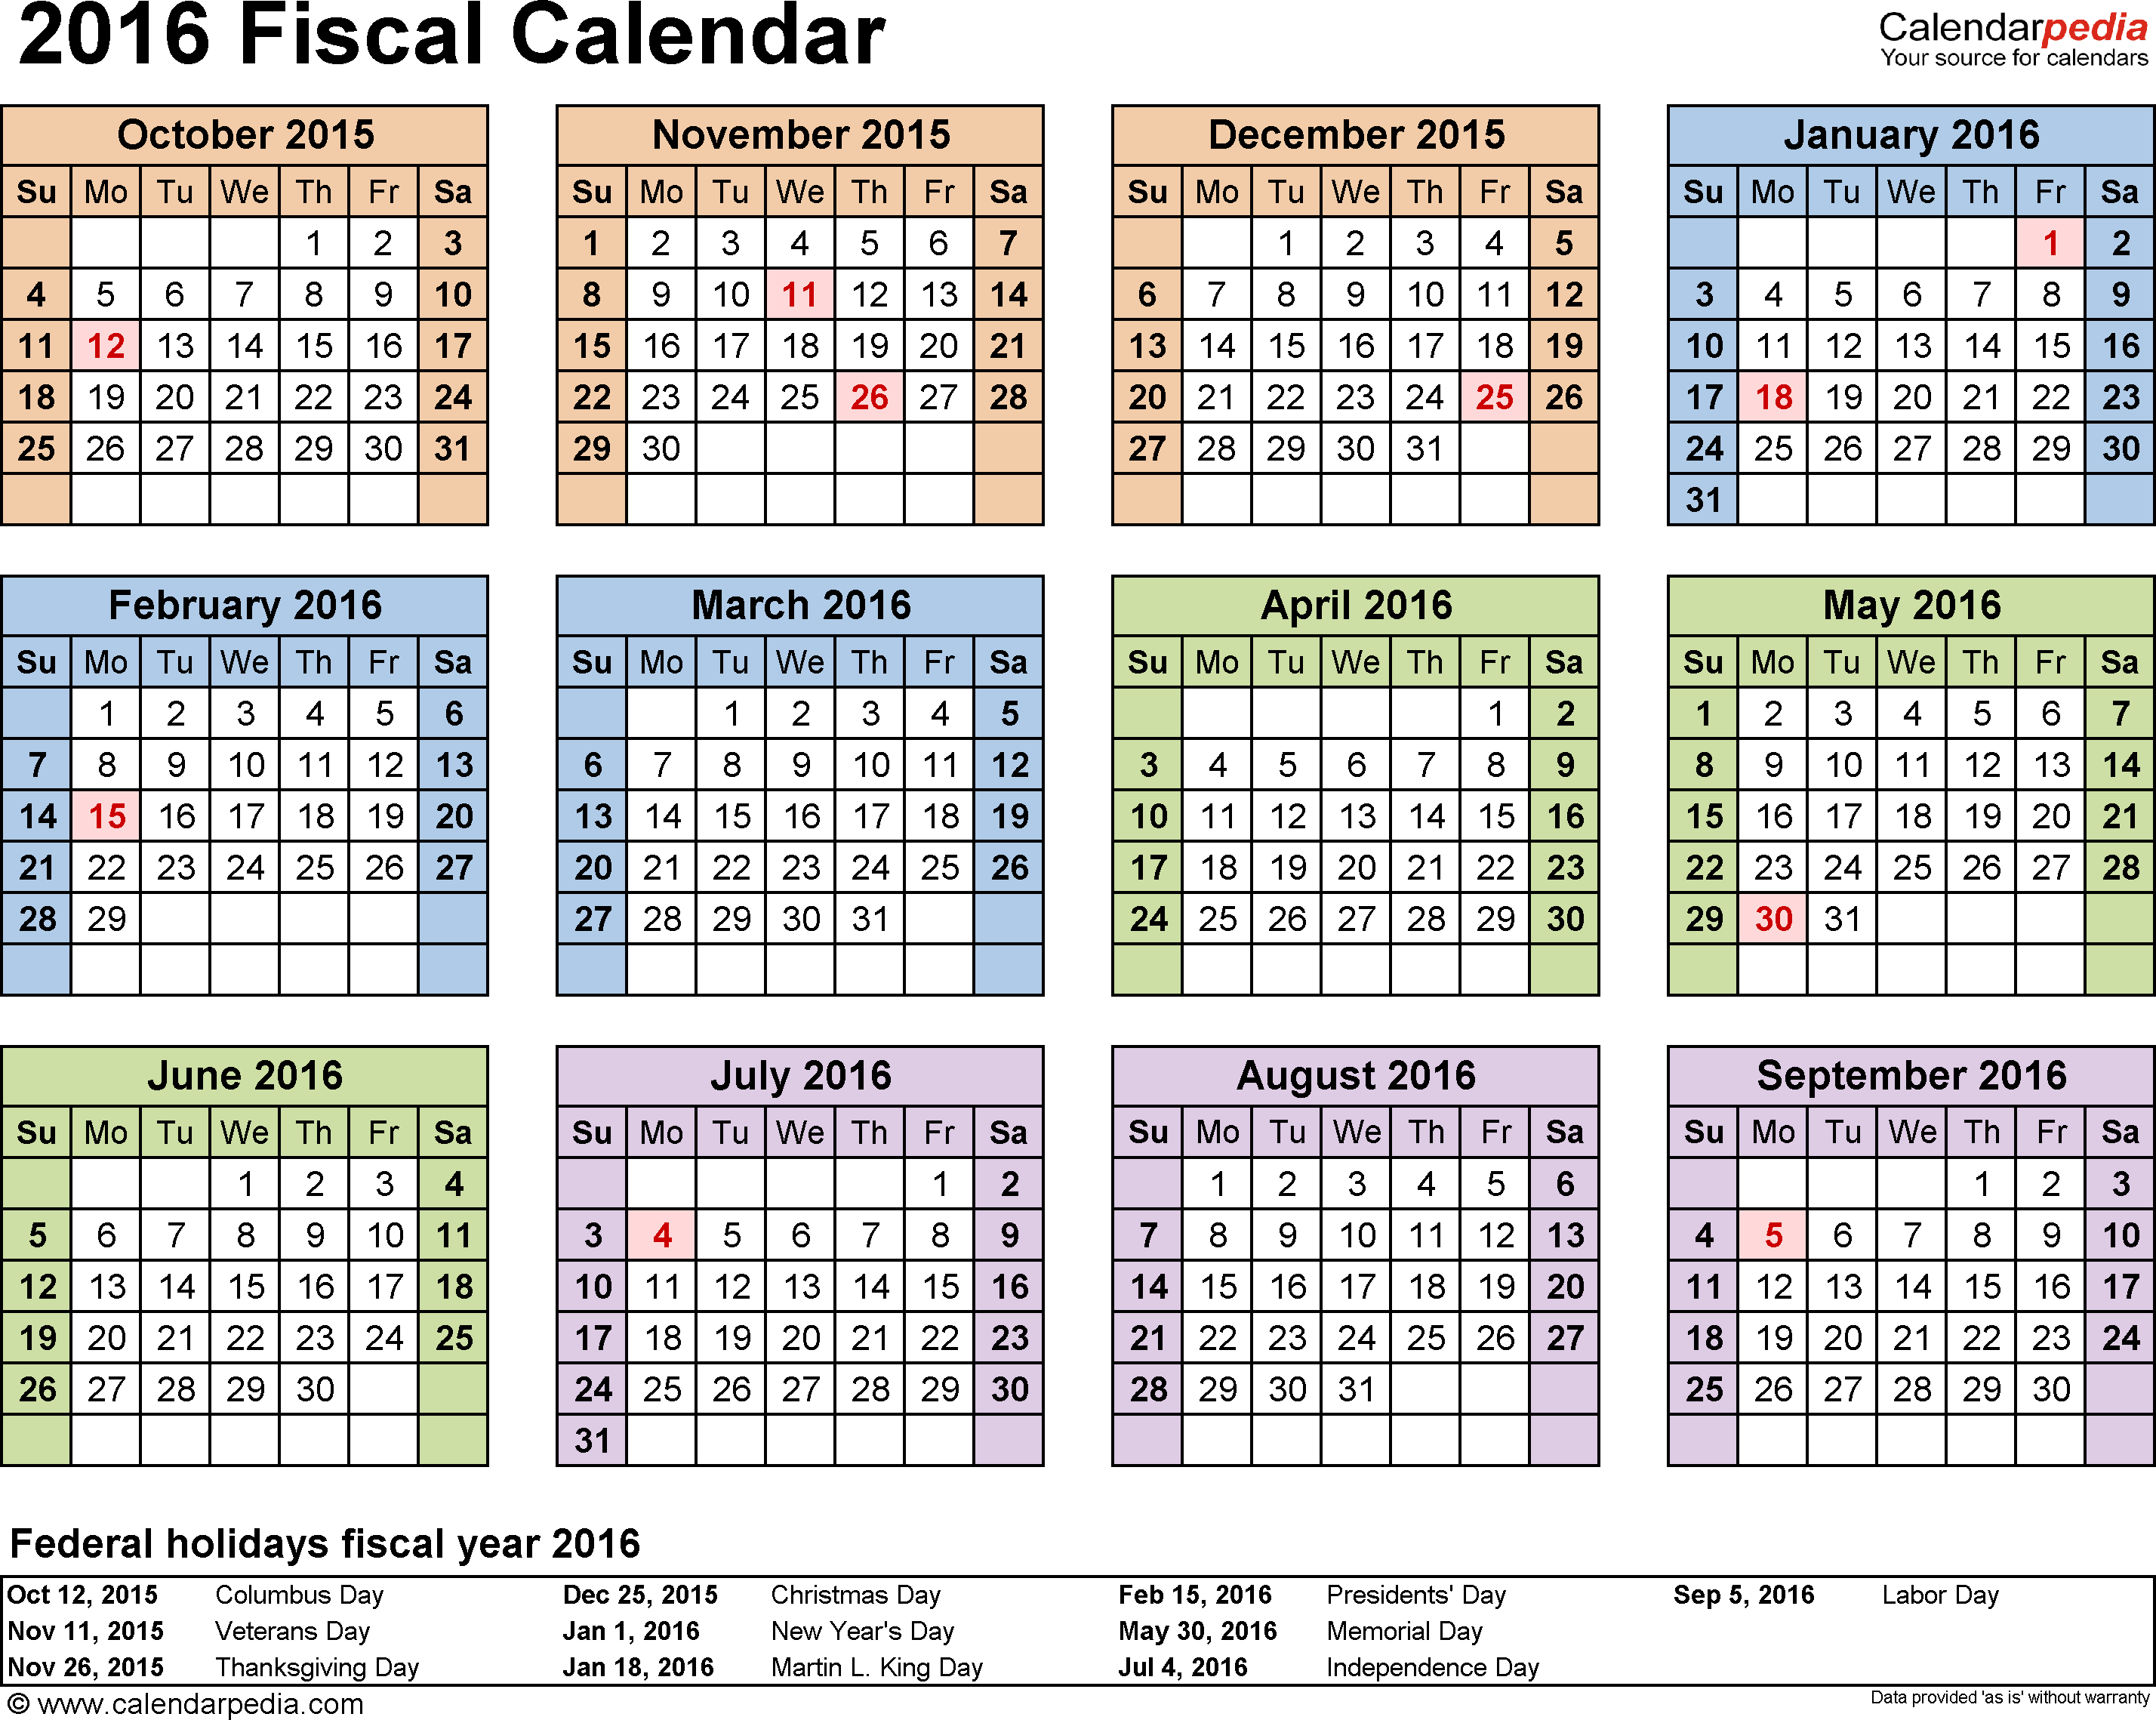 Template 4: Fiscal year calendar 2016 for Word, landscape orientation, year at a glance, 1 page